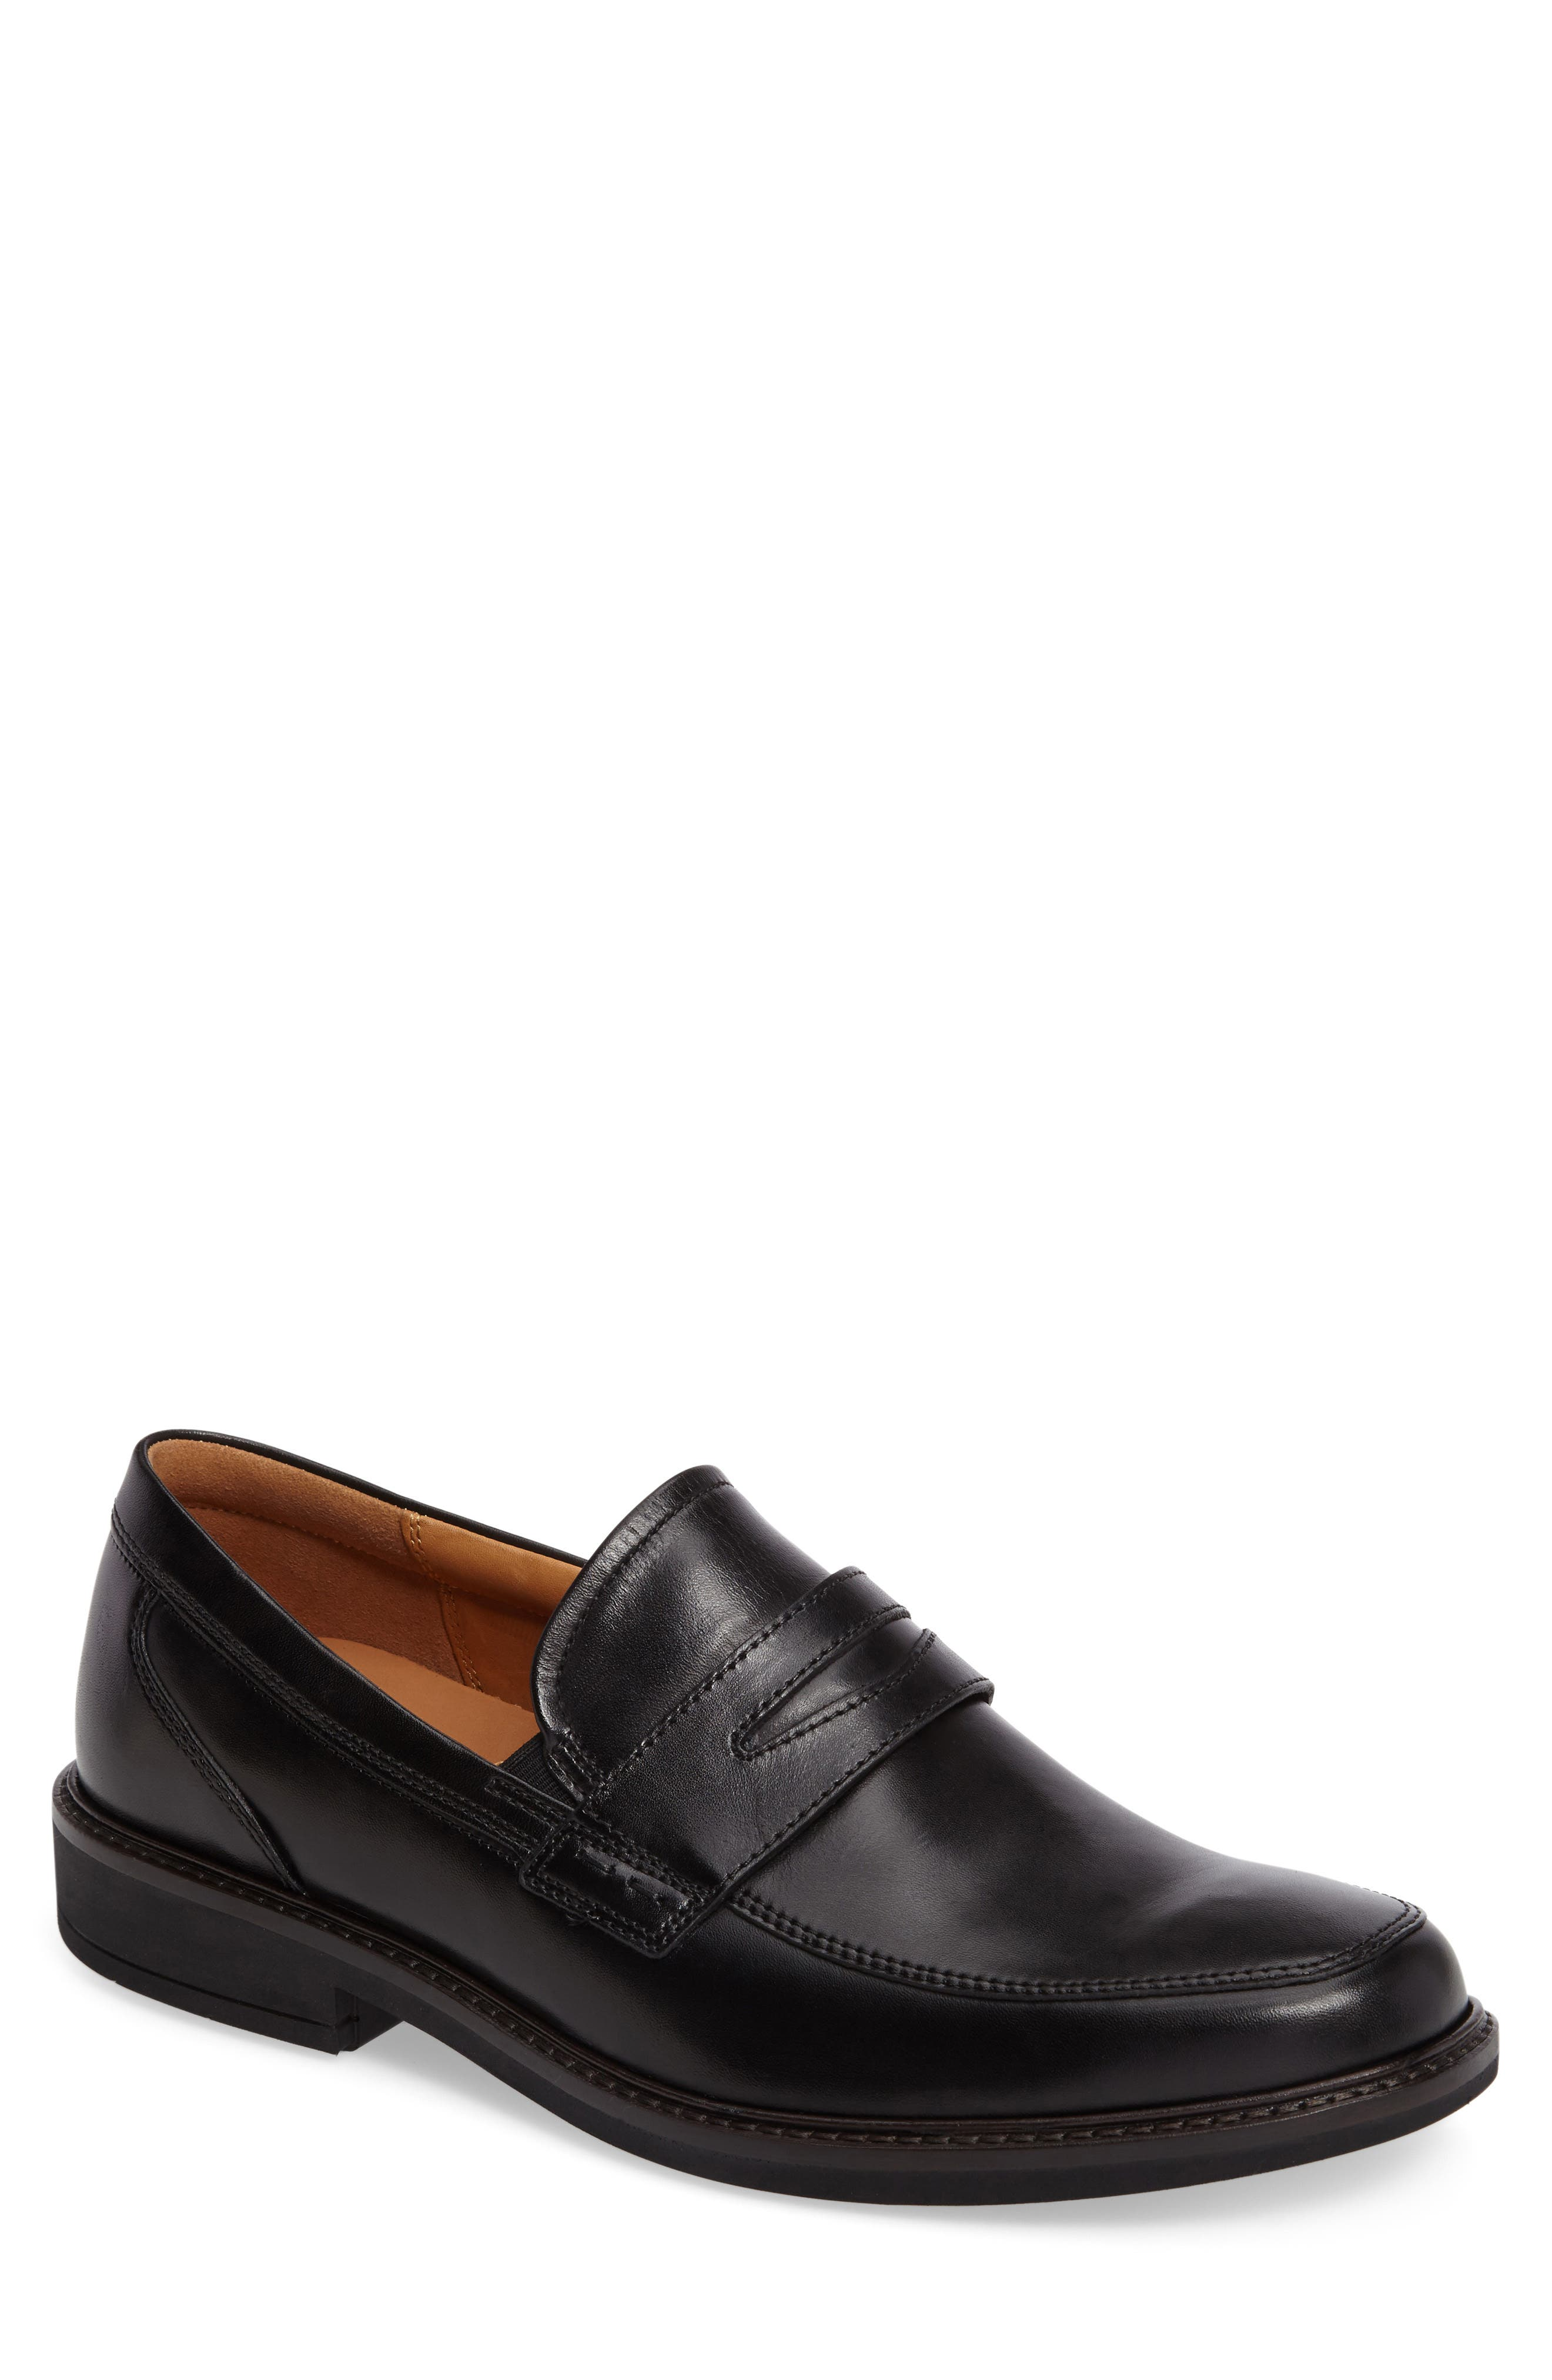 Holton Penny Loafer,                             Main thumbnail 1, color,                             001